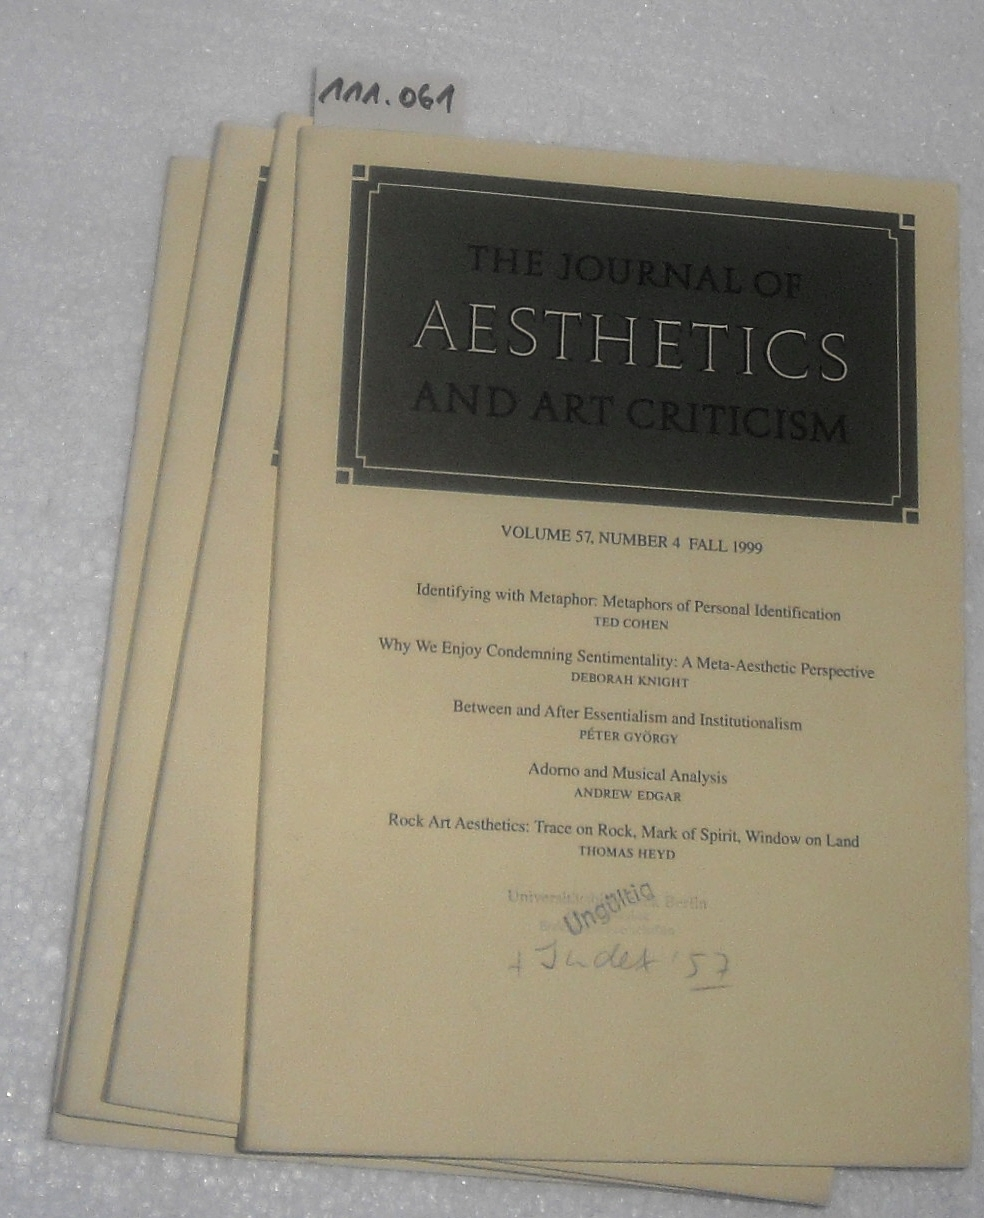 Journal of Aesthetics and Art Criticism. - Band / Volume 57 - 1999. (complete, No.1-4 / komplett, 4 Hefte Nr. 1-4)